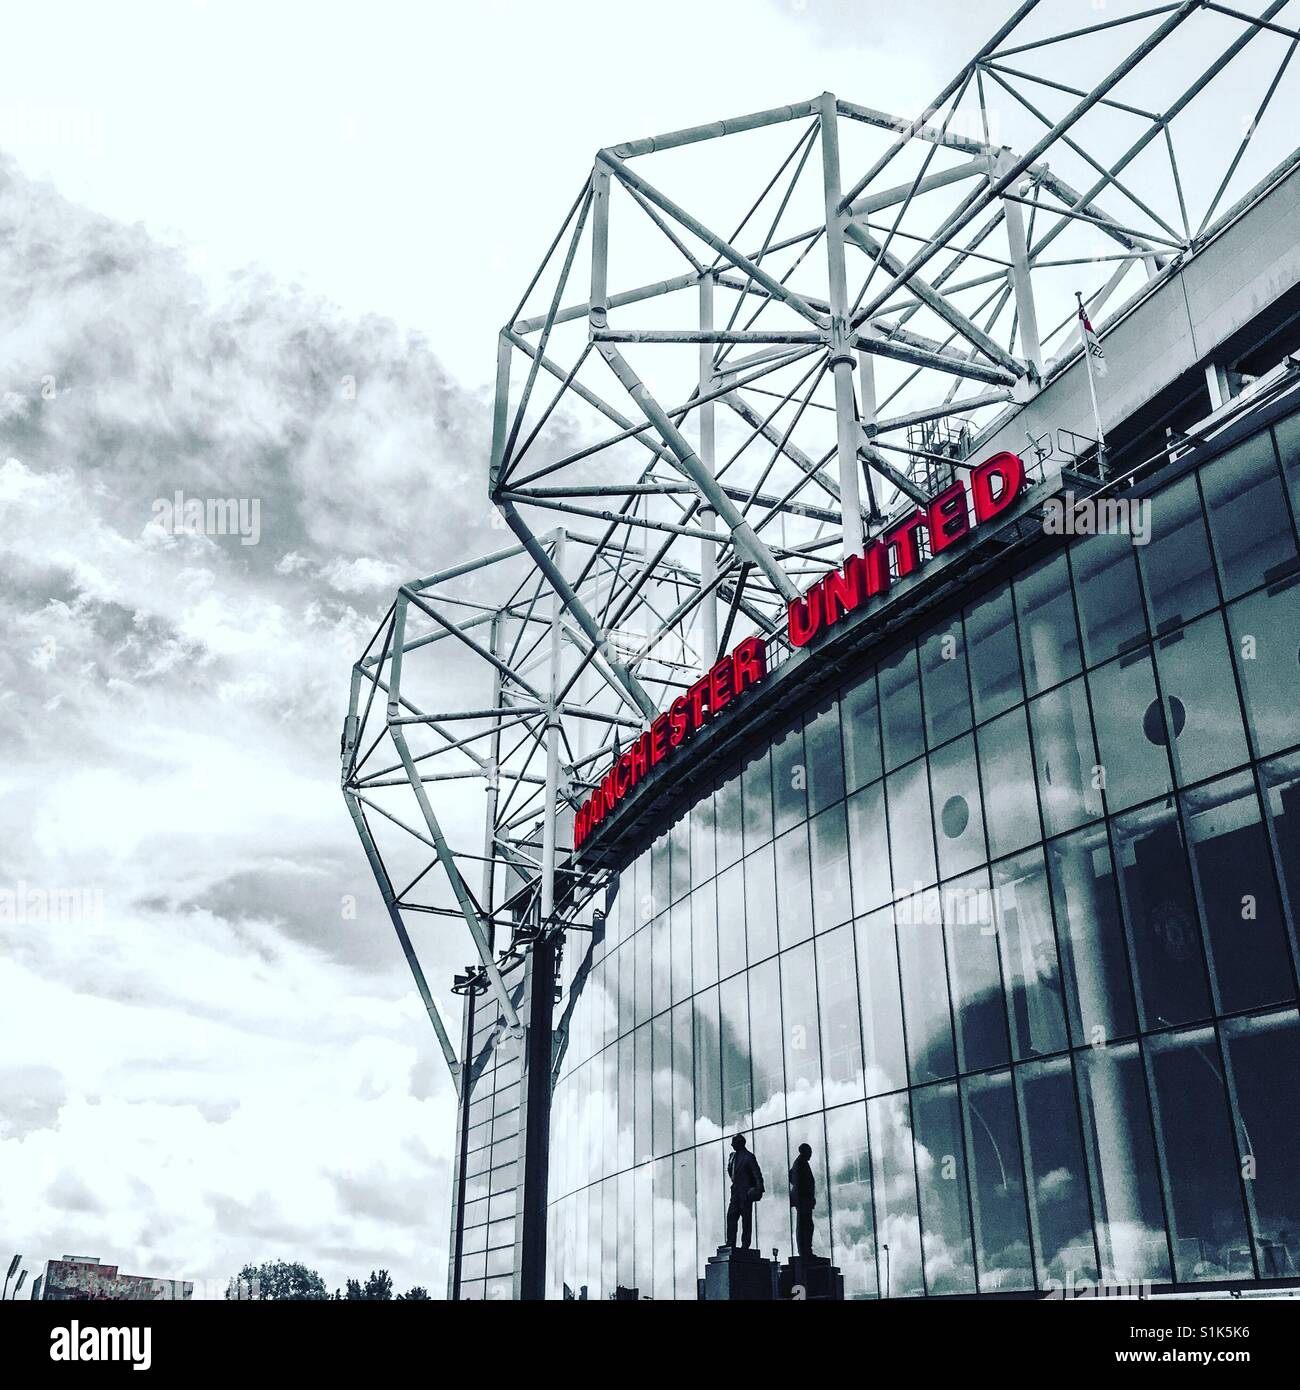 Front facade of Old Trafford, home of Manchester United, and the statue of its legendary manager Sir Matt Busby - Stock Image